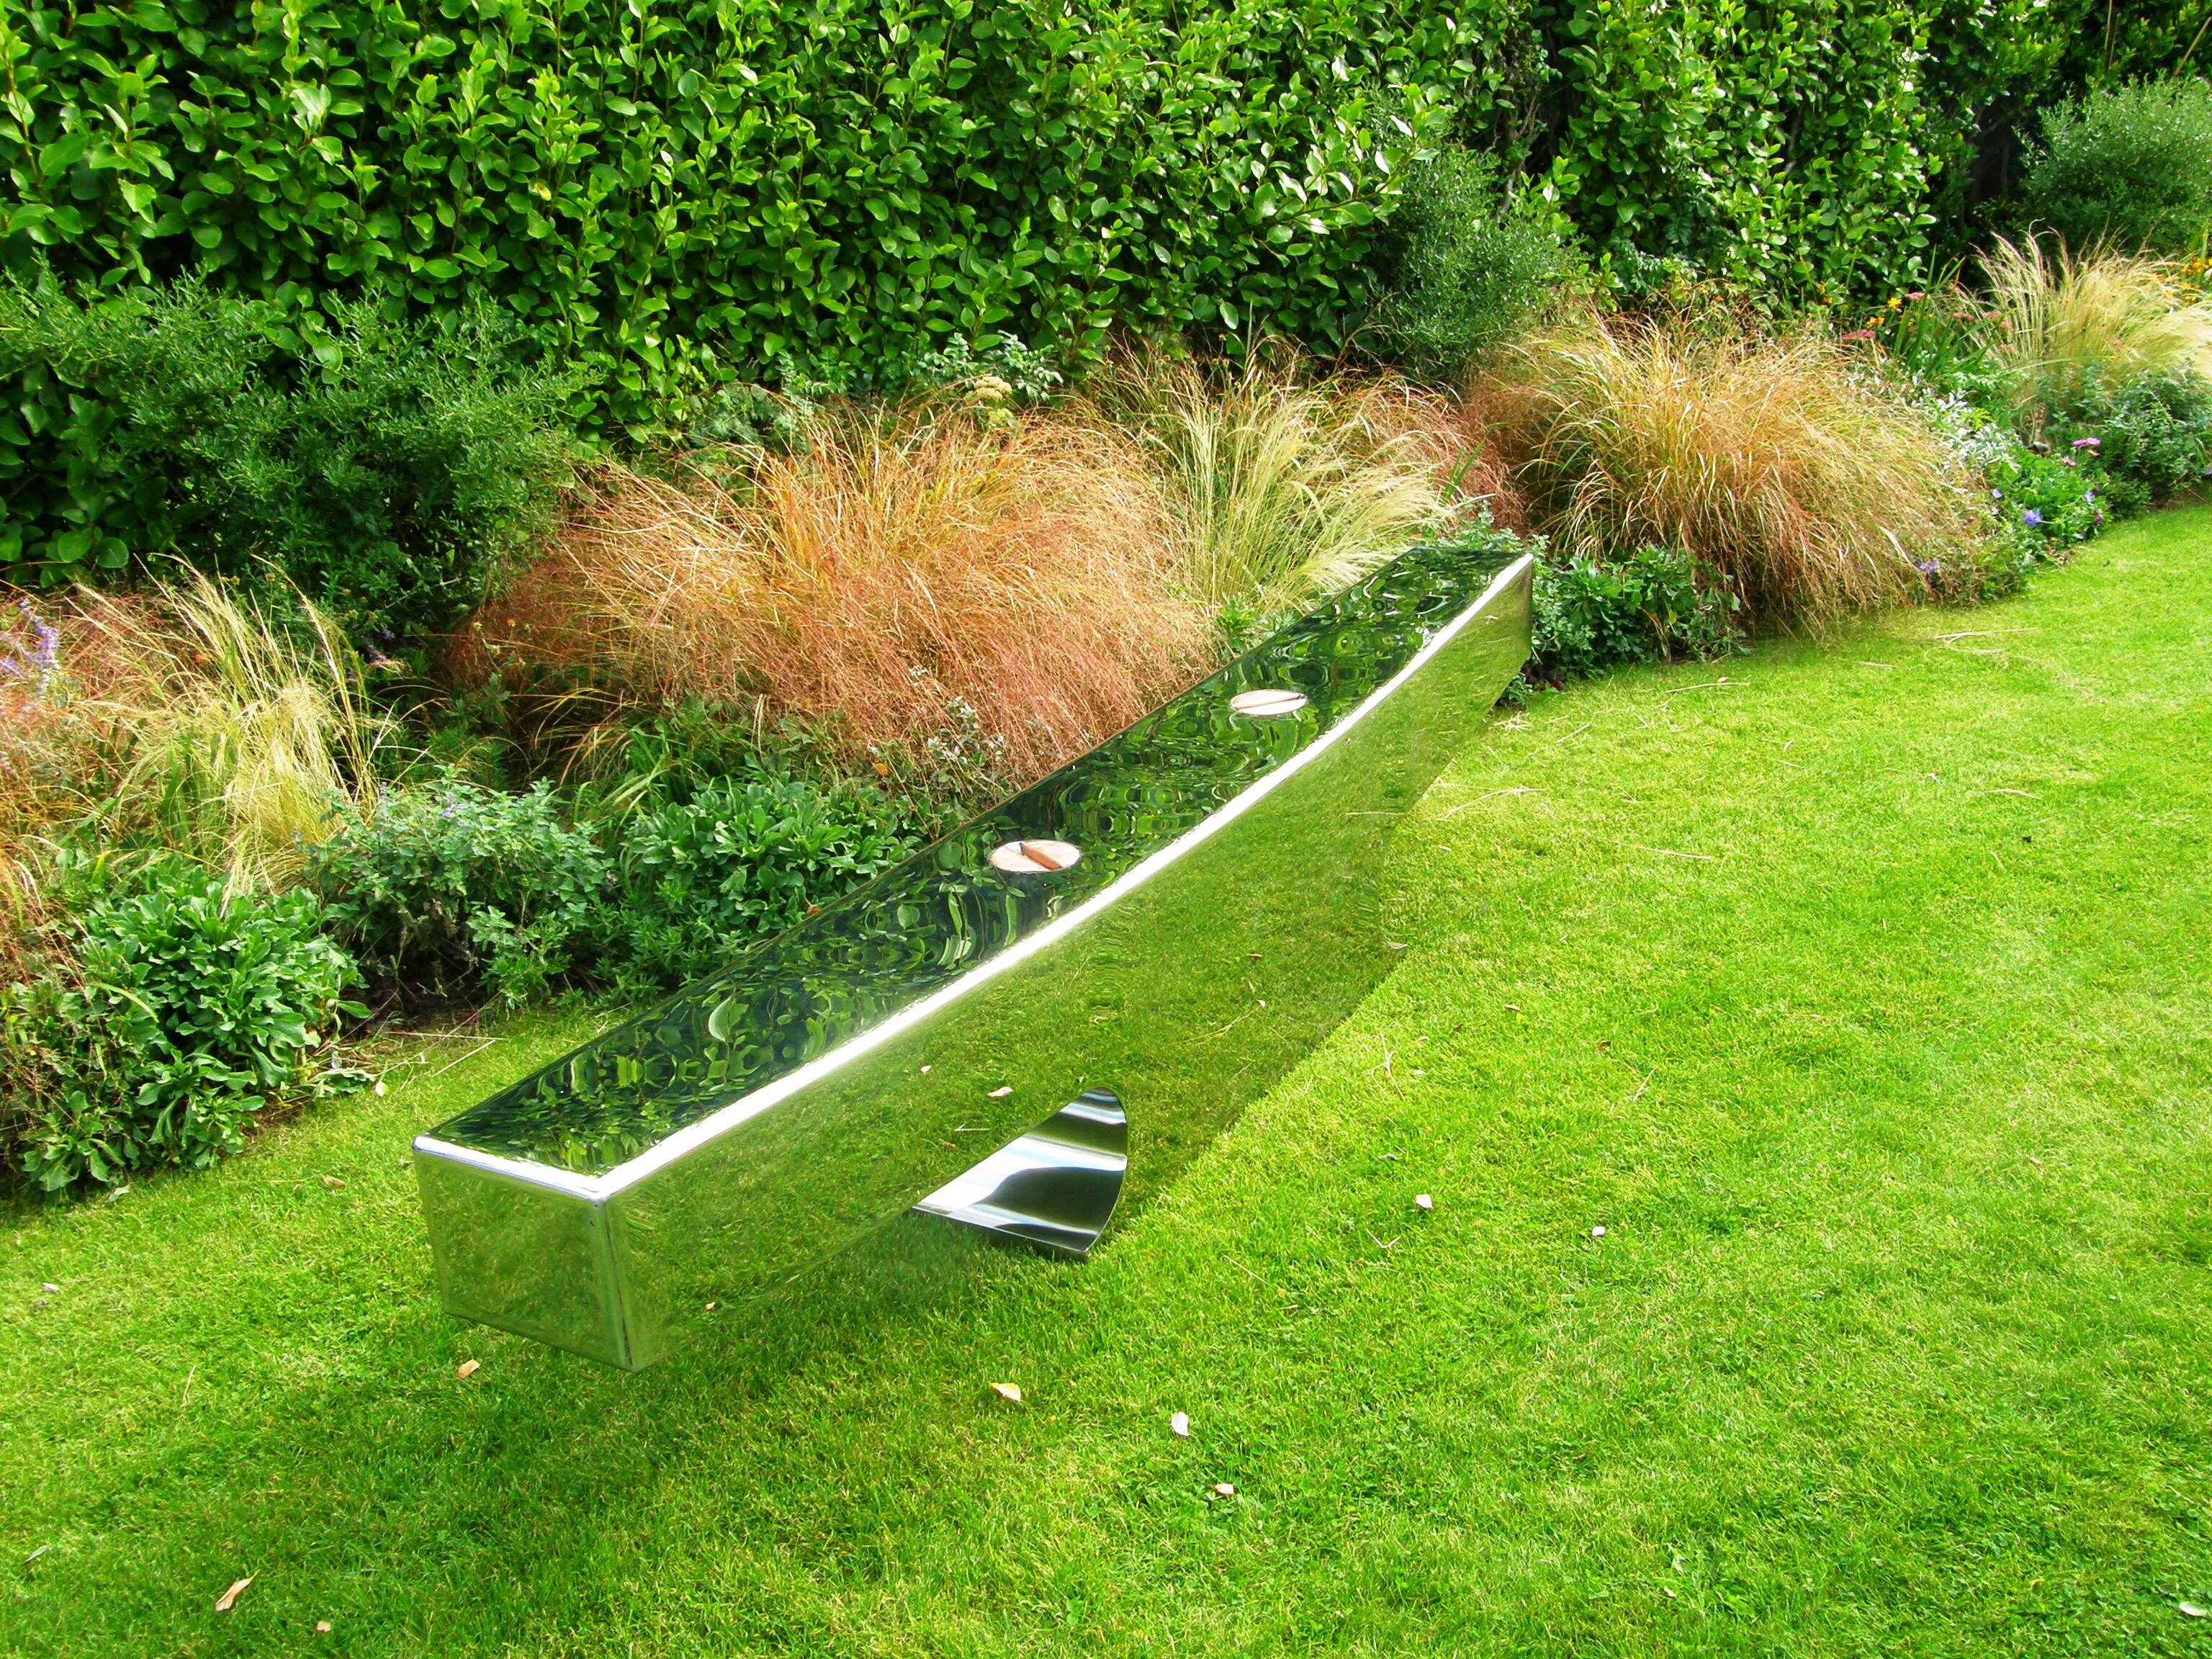 Garden Sculpture or Outdoor Seating - Beautiful or Practical or Both?